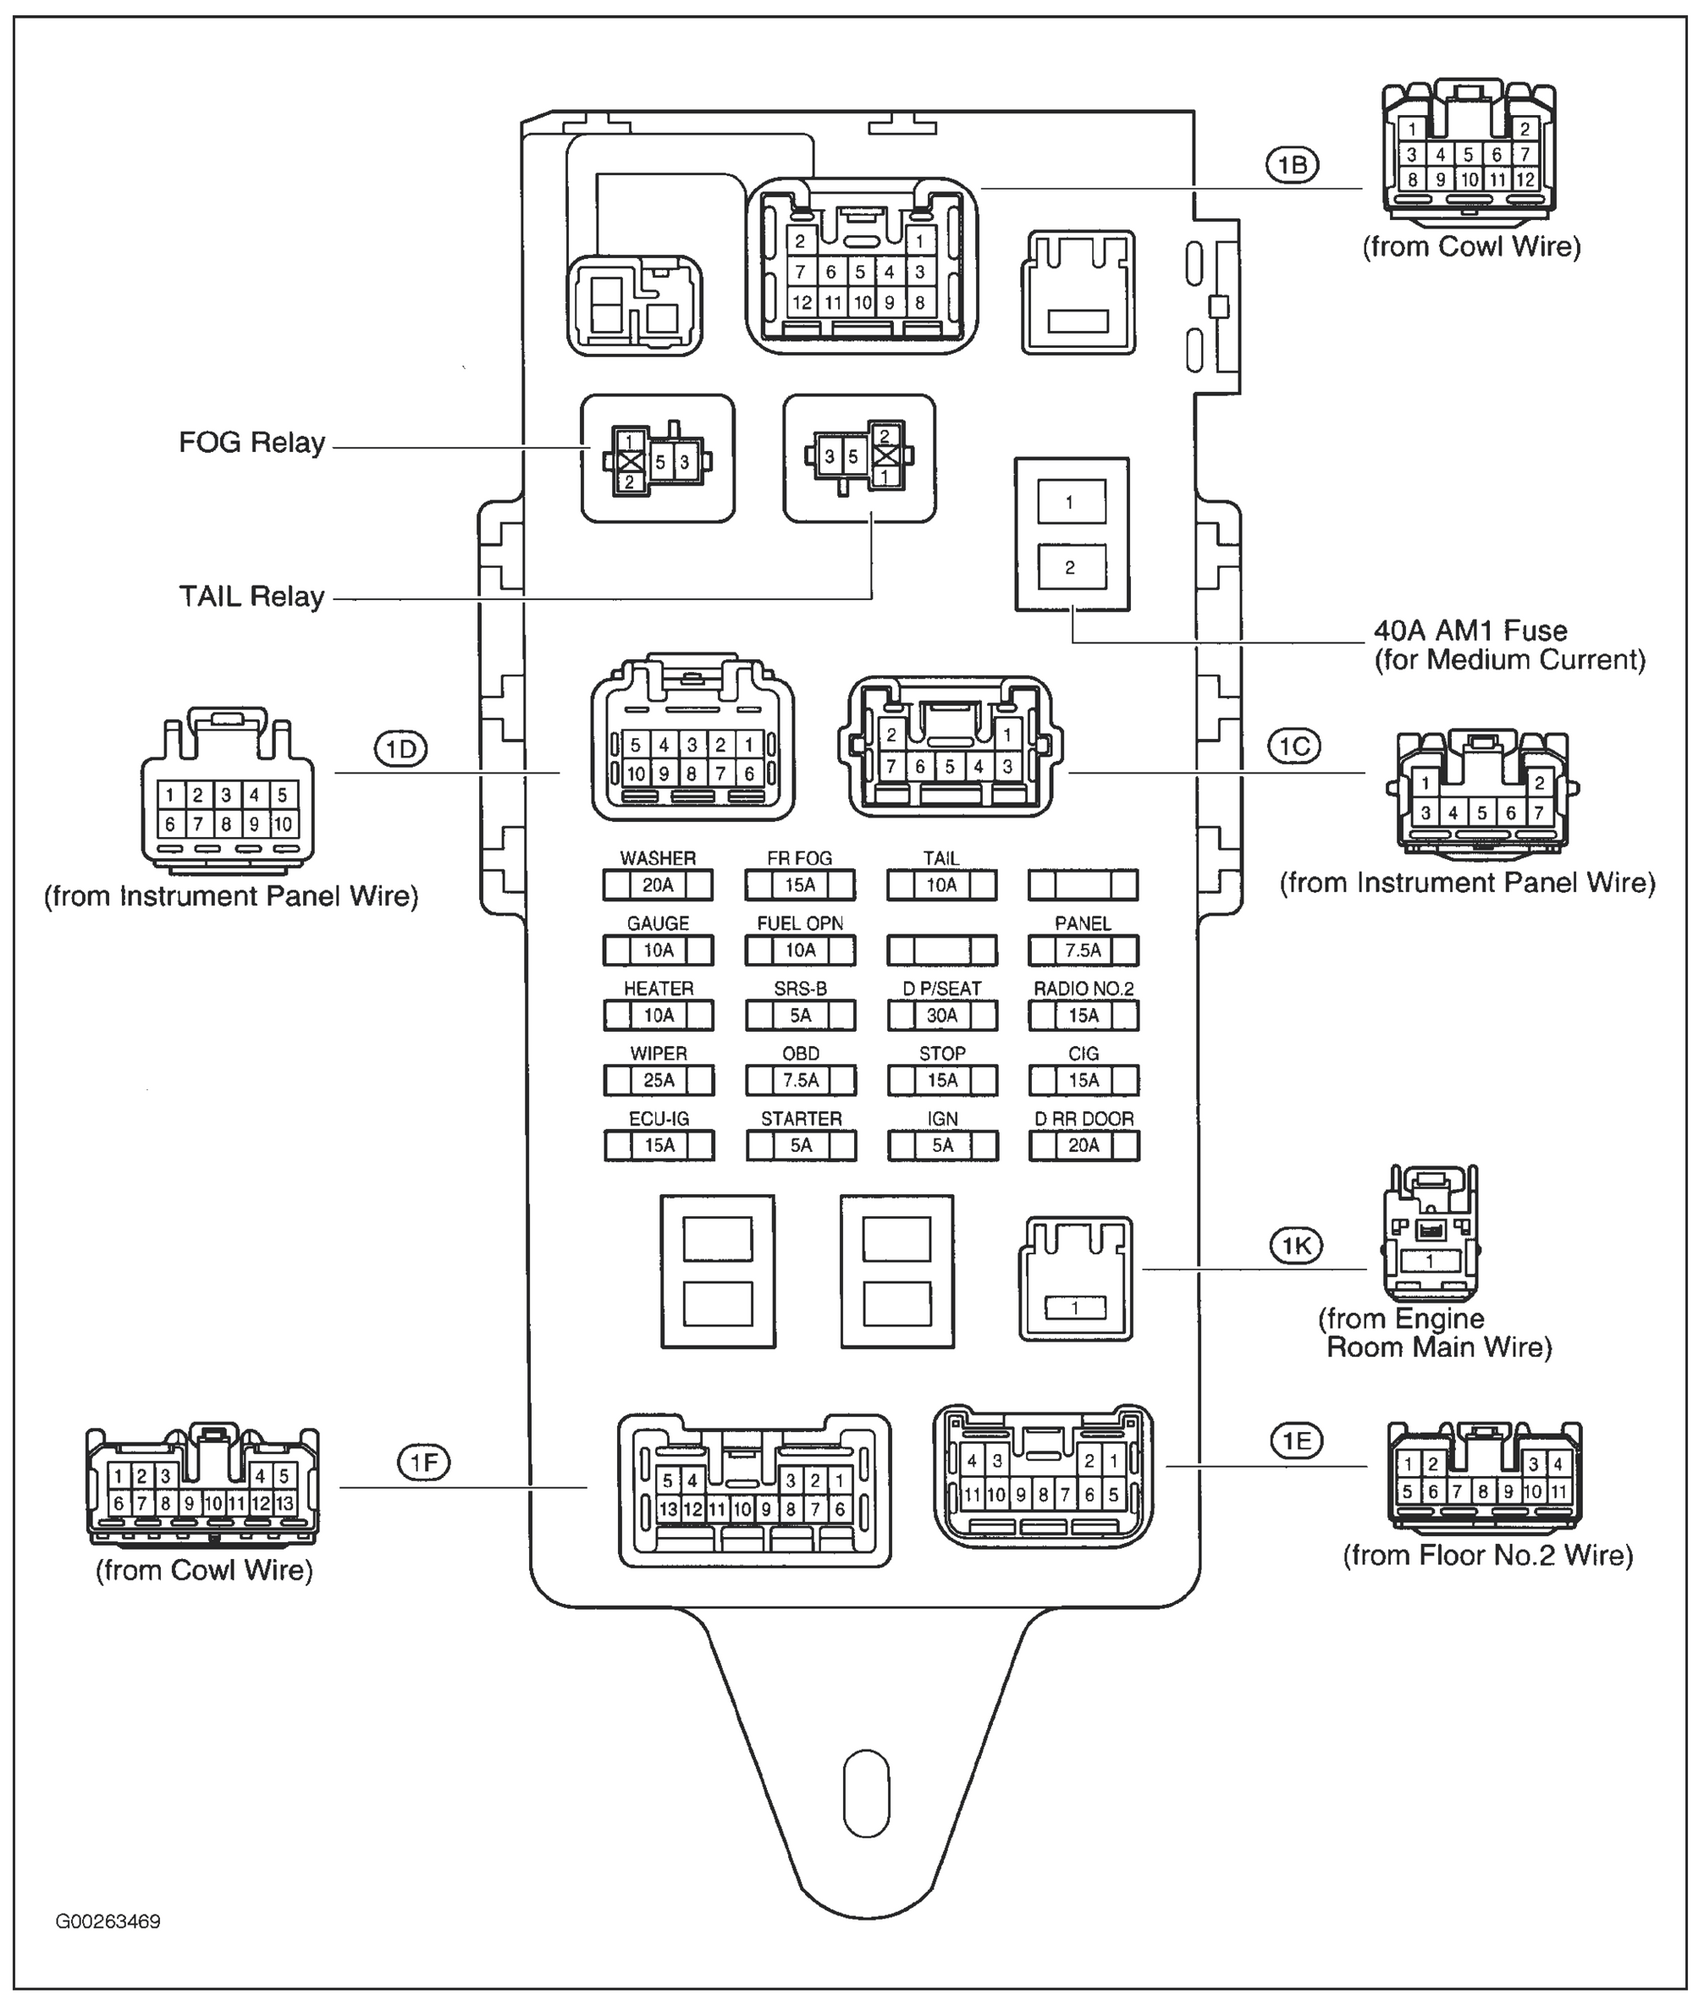 2002 Lexus Es300 Fuse Box Diagram Download Wiring Diagrams 2003 Lincoln Ls 2006 Gs430 Ls430